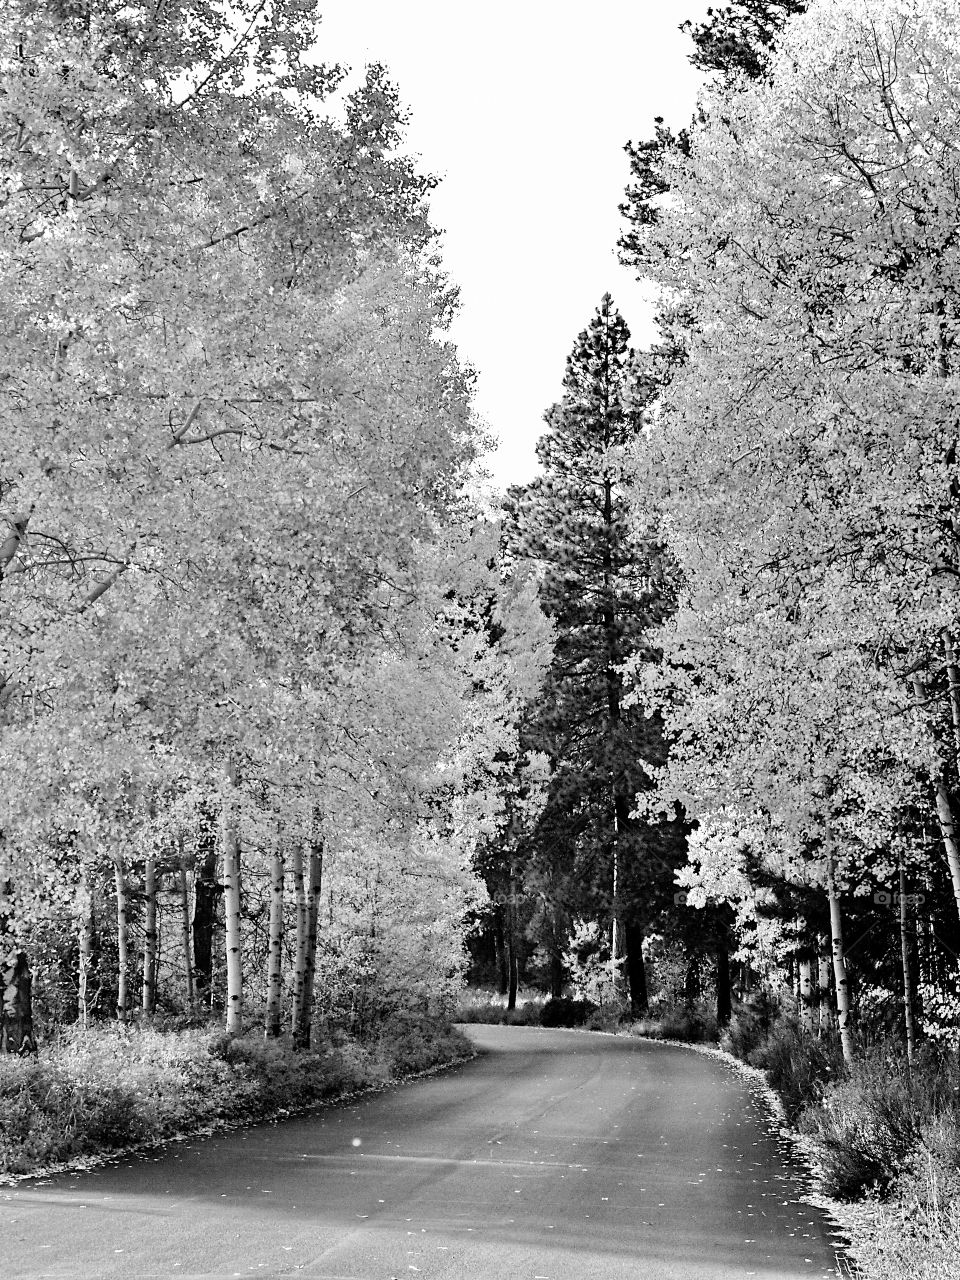 A backroad rode travels through an aspen forest in Central Oregon on a fall day.